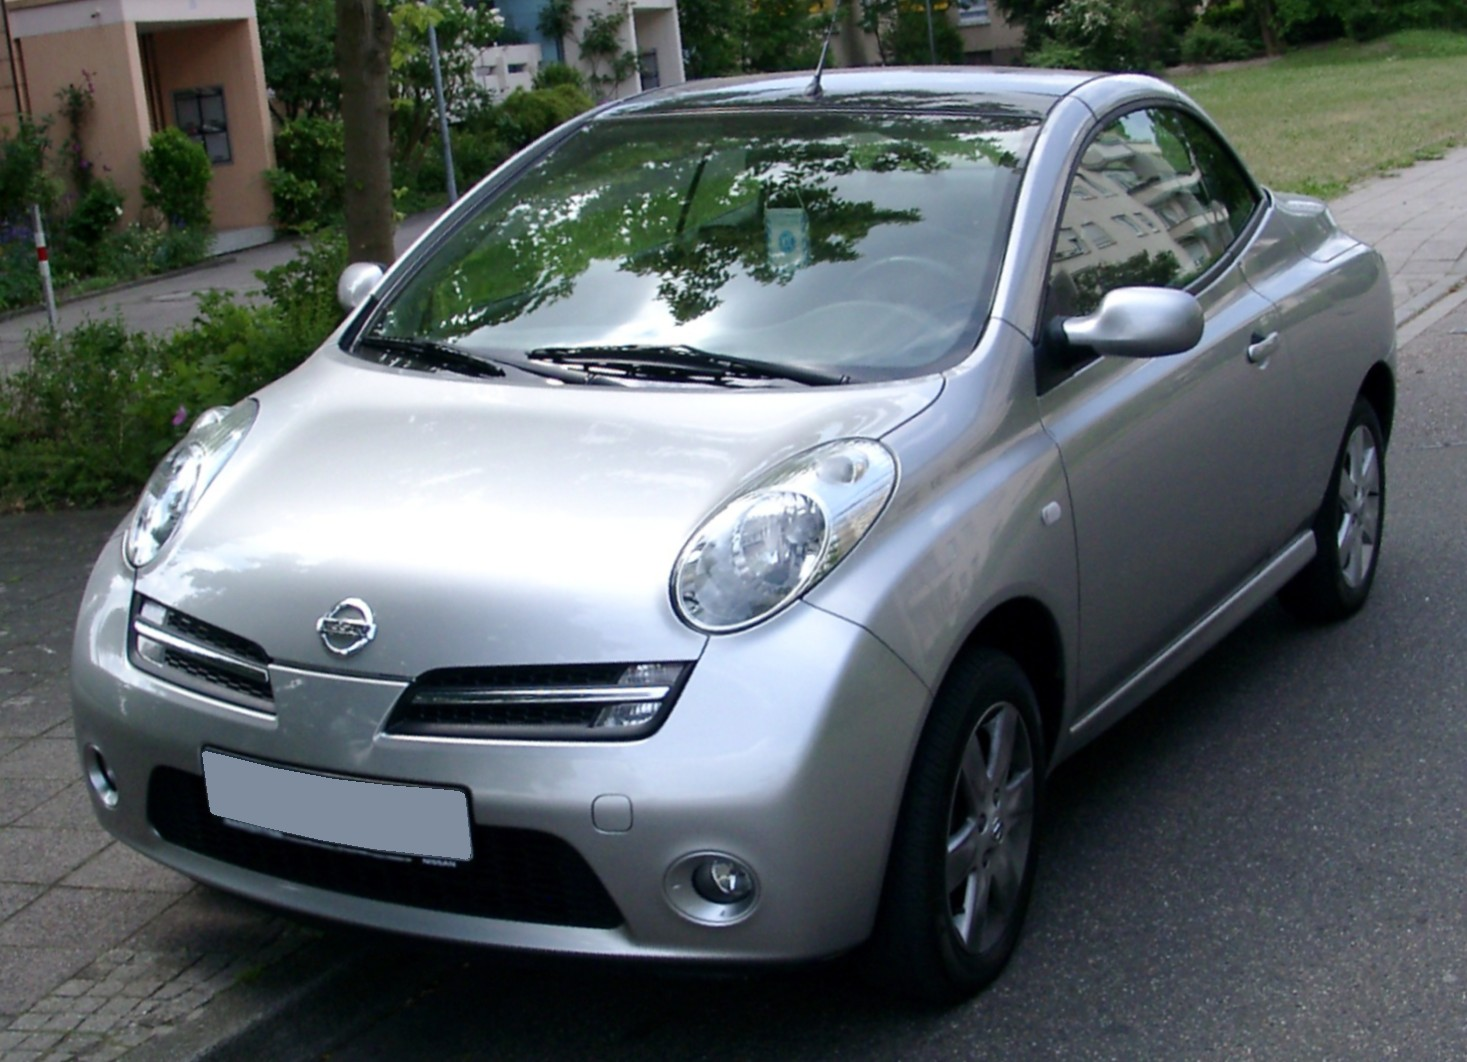 2008 nissan micra coupe cabriolet k12c pictures information and specs auto. Black Bedroom Furniture Sets. Home Design Ideas